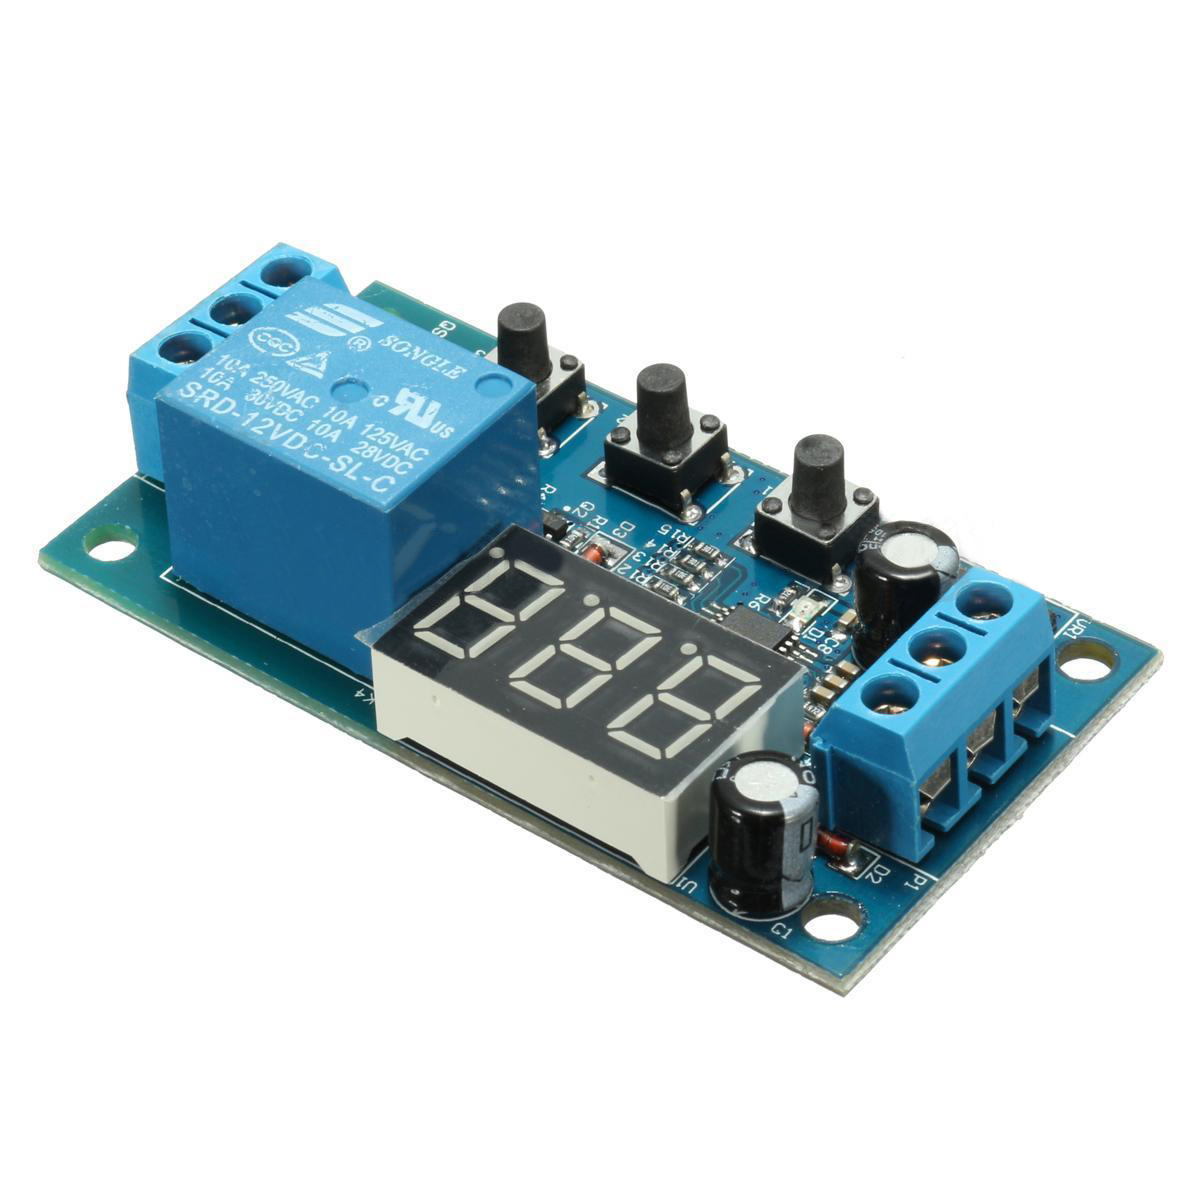 1pc Multifunction Time Delay Relay Module 12V Digital Display Trigger Cycle Switch Module Control Circuit 1pc multifunction self lock relay dc 12v plc cycle timer module delay time relay